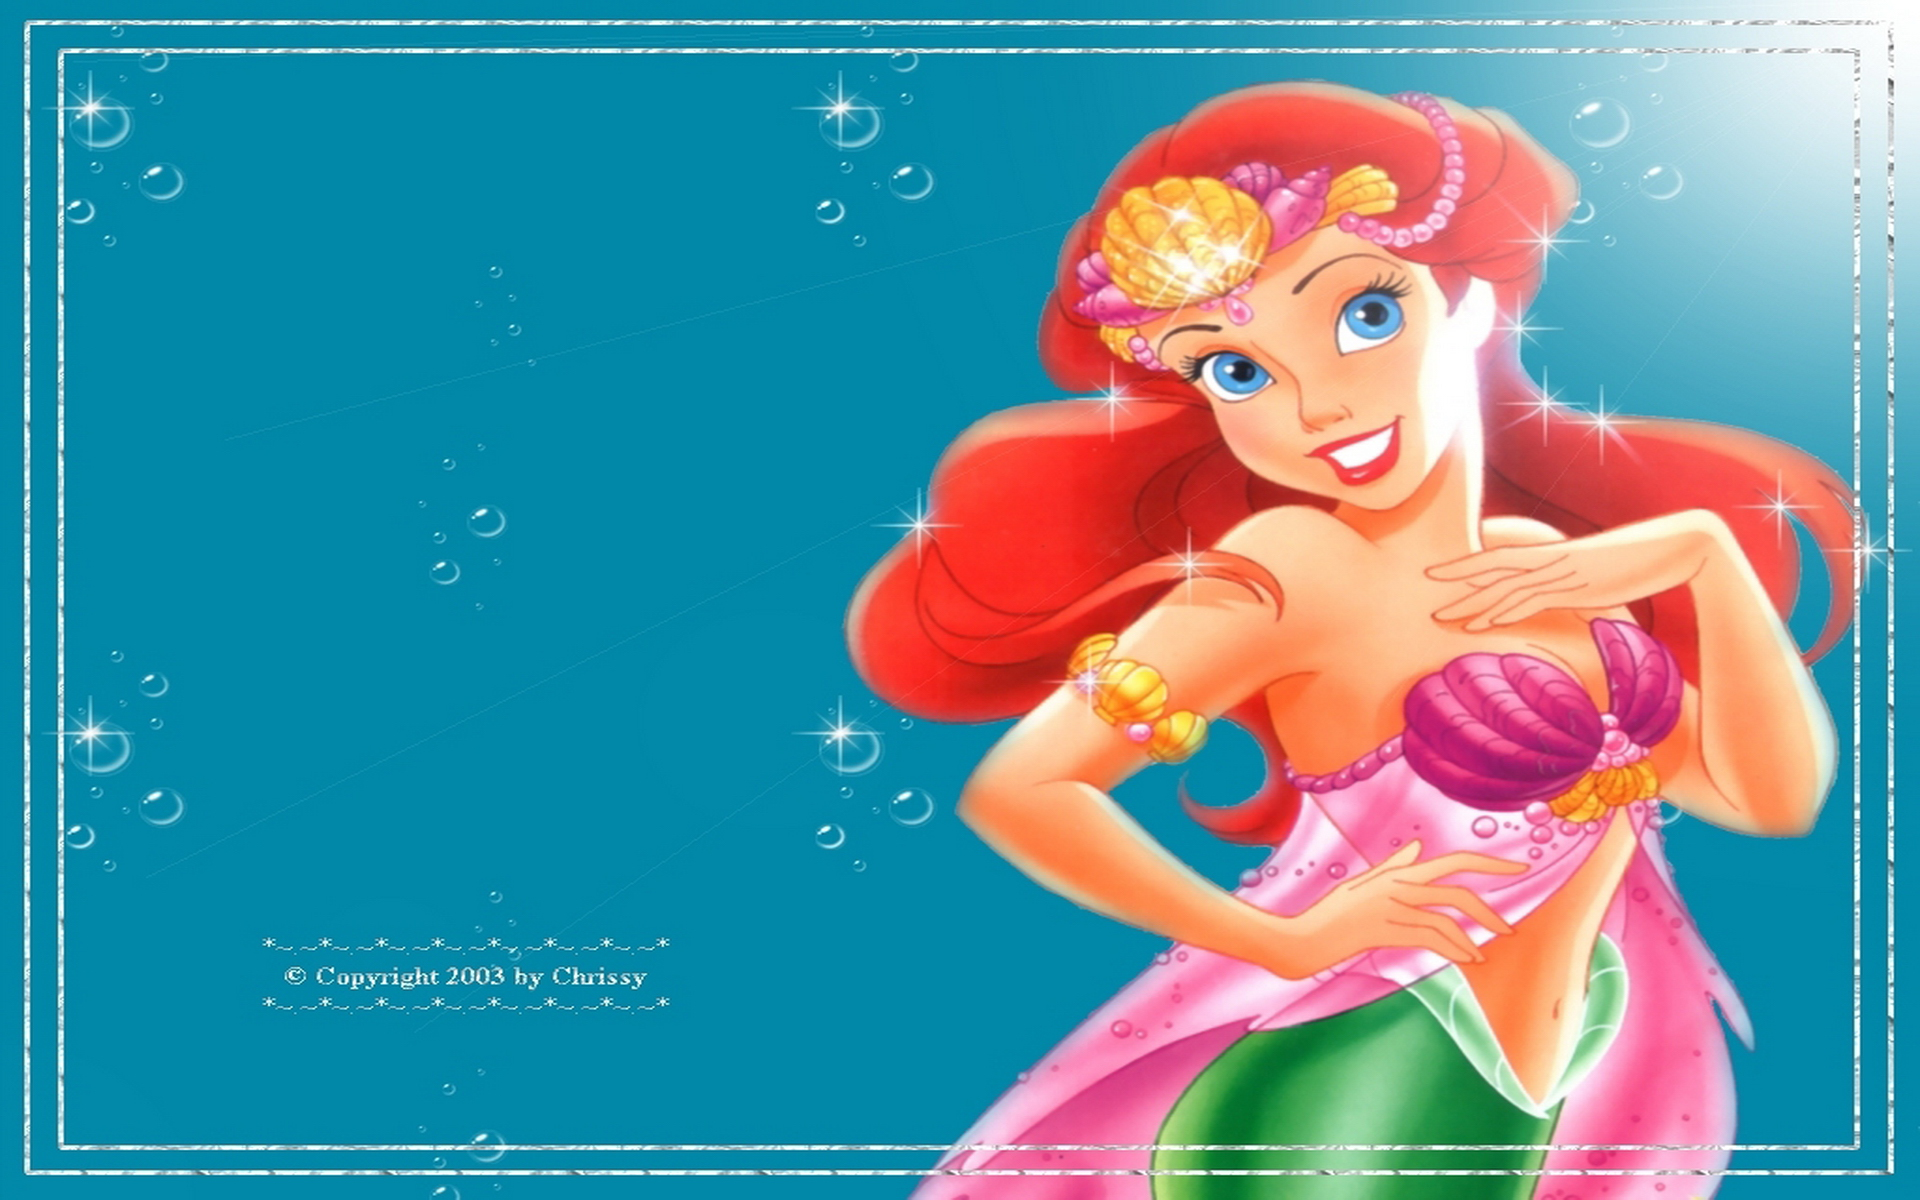 hd widescreen desktop backgrounds ariel wallpaper disney princess Car 1920x1200